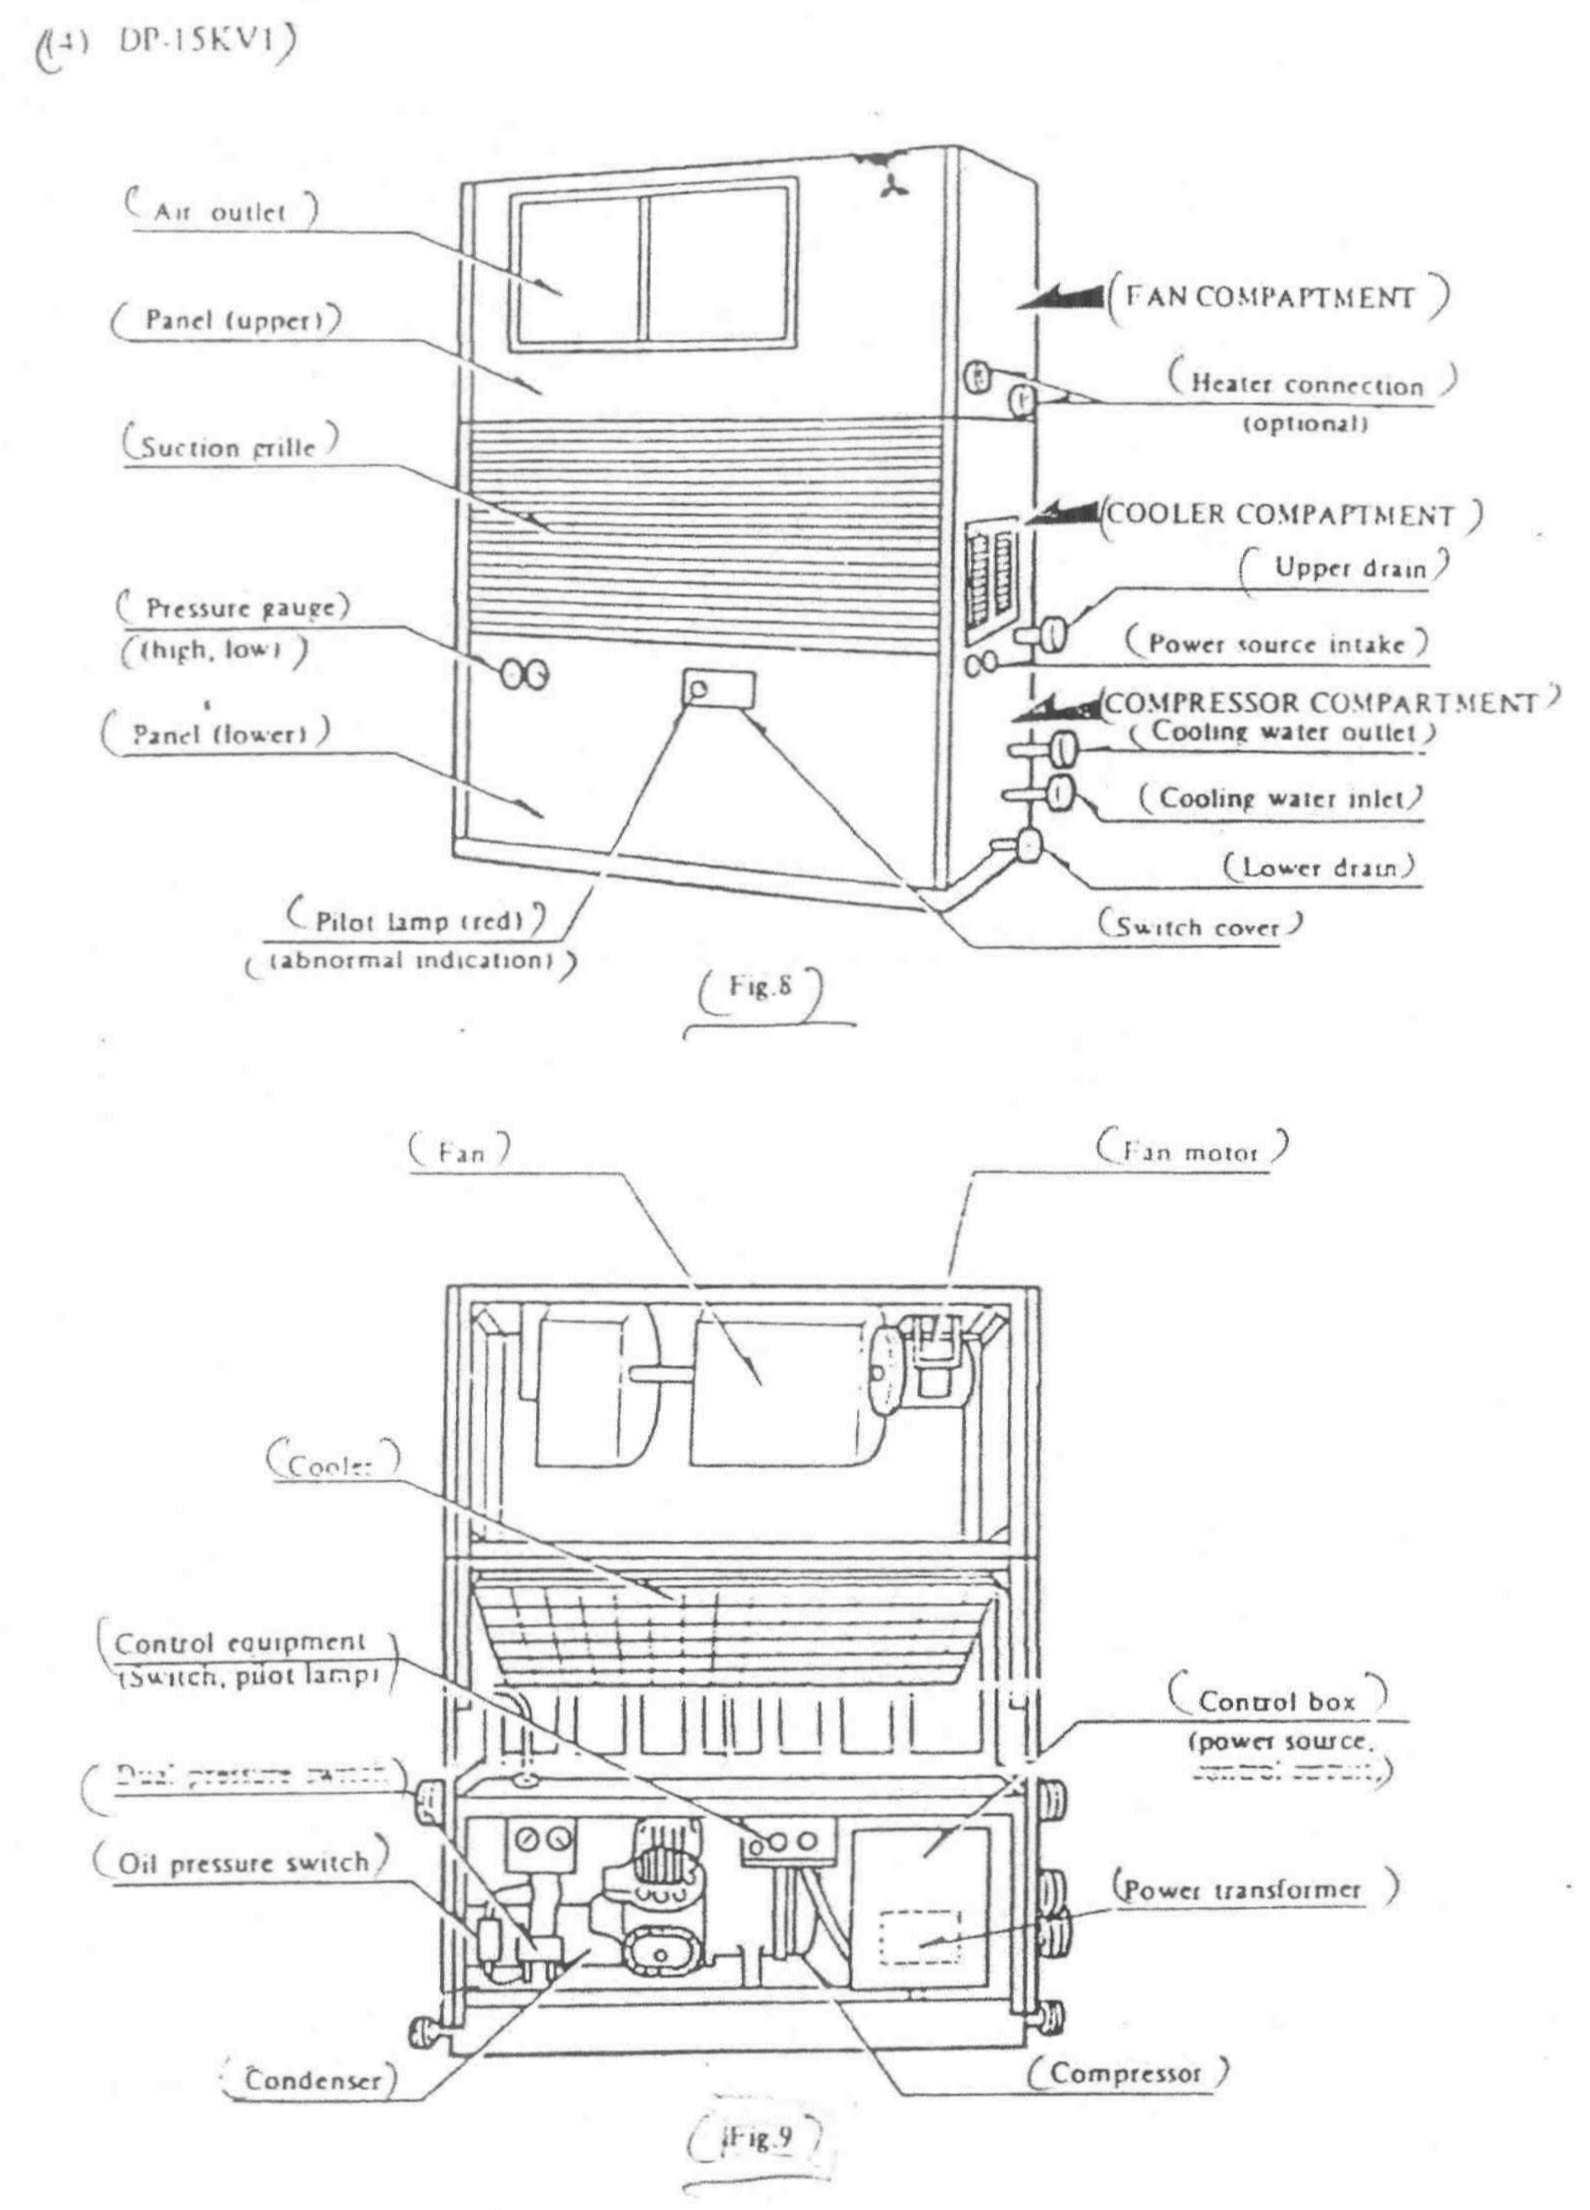 Kr20120064663a Air Pressure Type Regulation Fish And Shell Fishe Figure 51 Circuit Diagram Of A Transformer Dissection Apparatus Method Used Google Patents